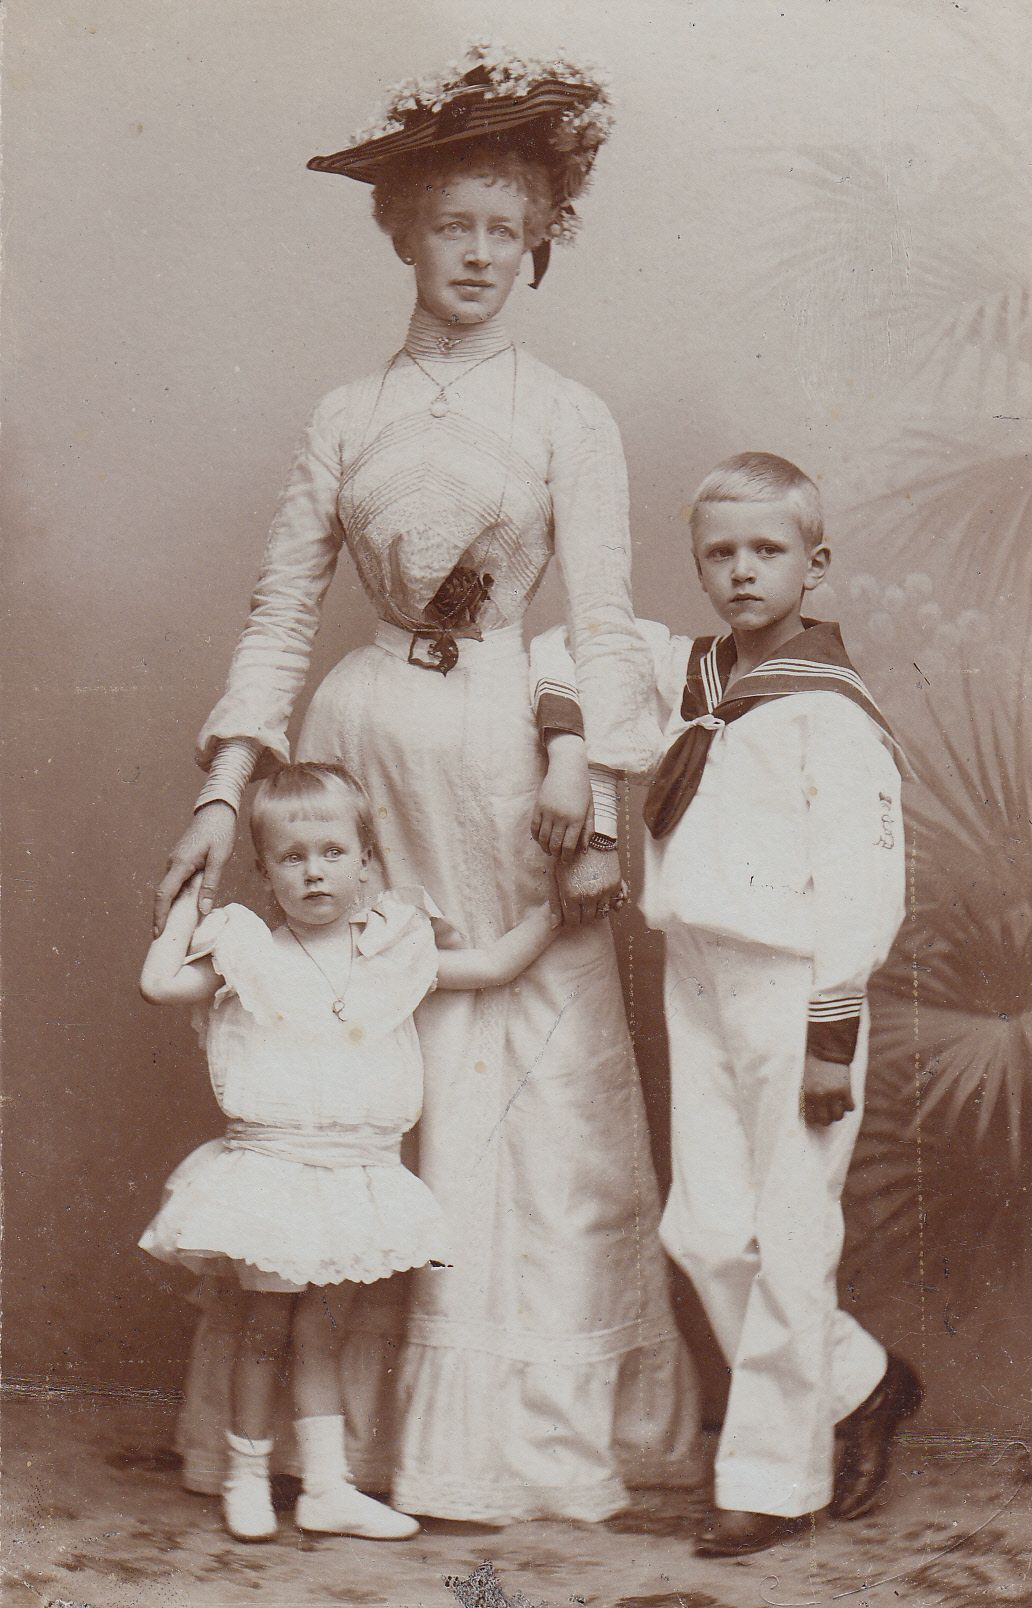 Princess Marie of Stolberg-Wernigerode, with her children, Prince Botho and Princess Juliana . 1900.